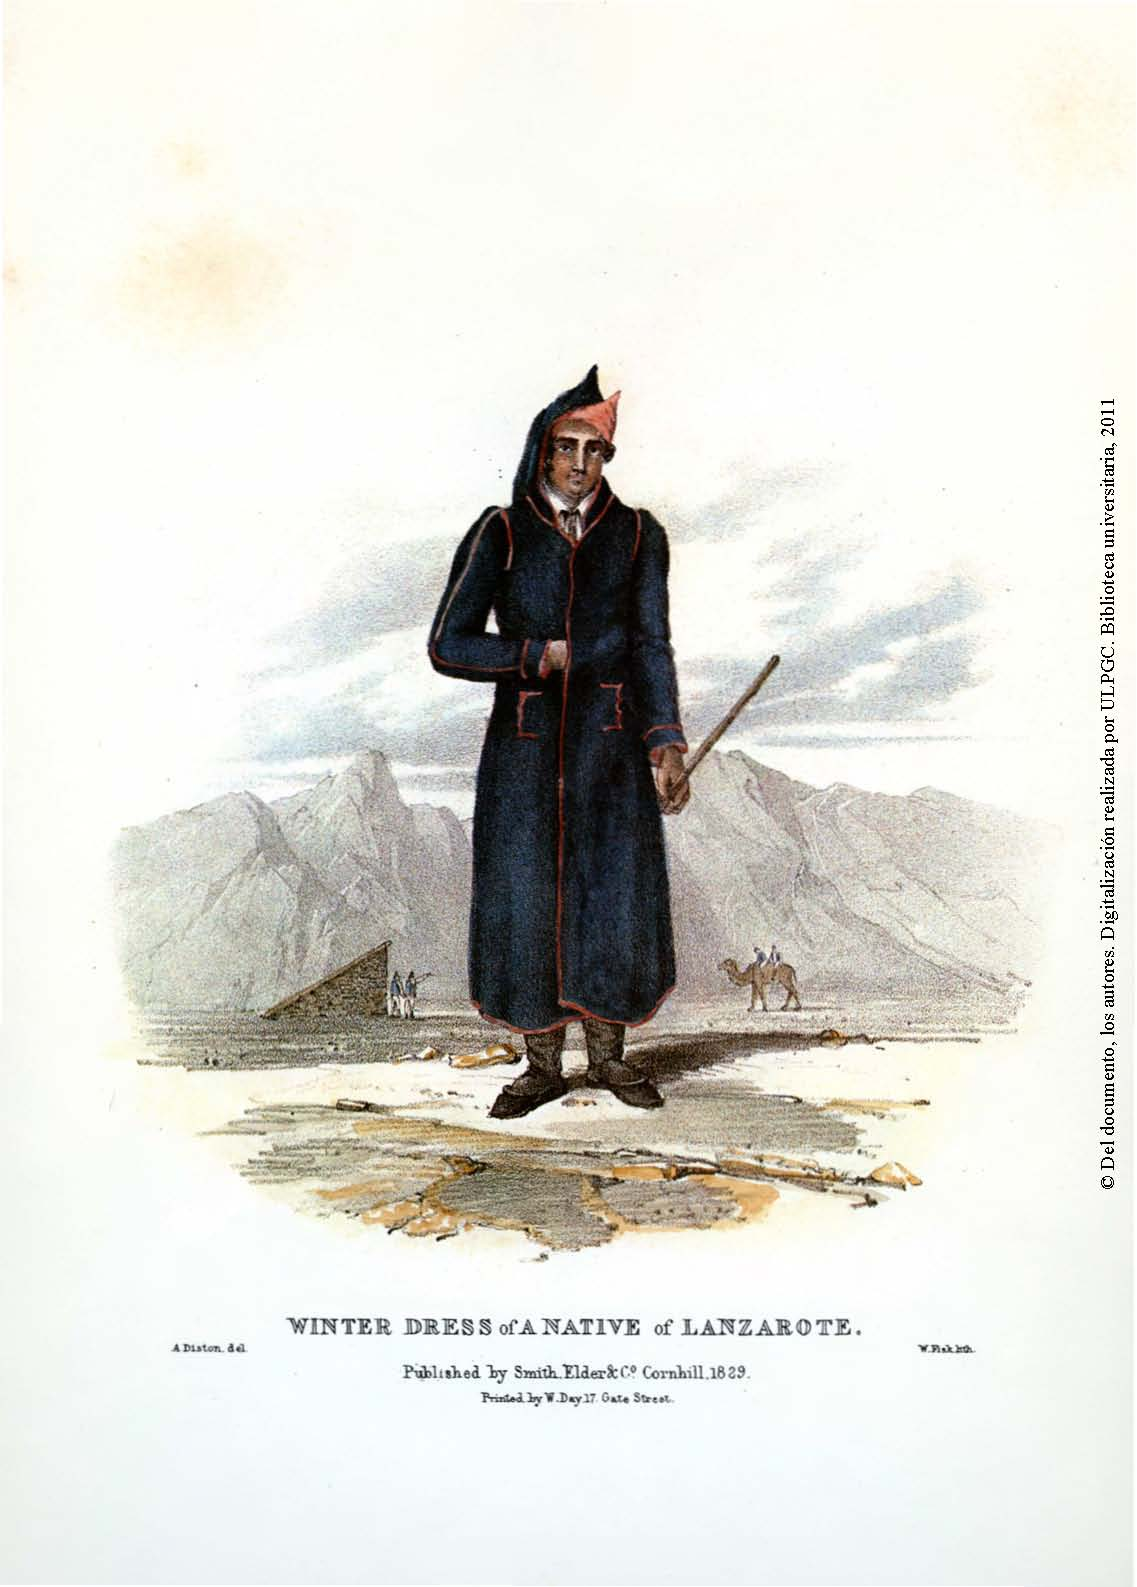 Winter dress of a native of Lanzarote